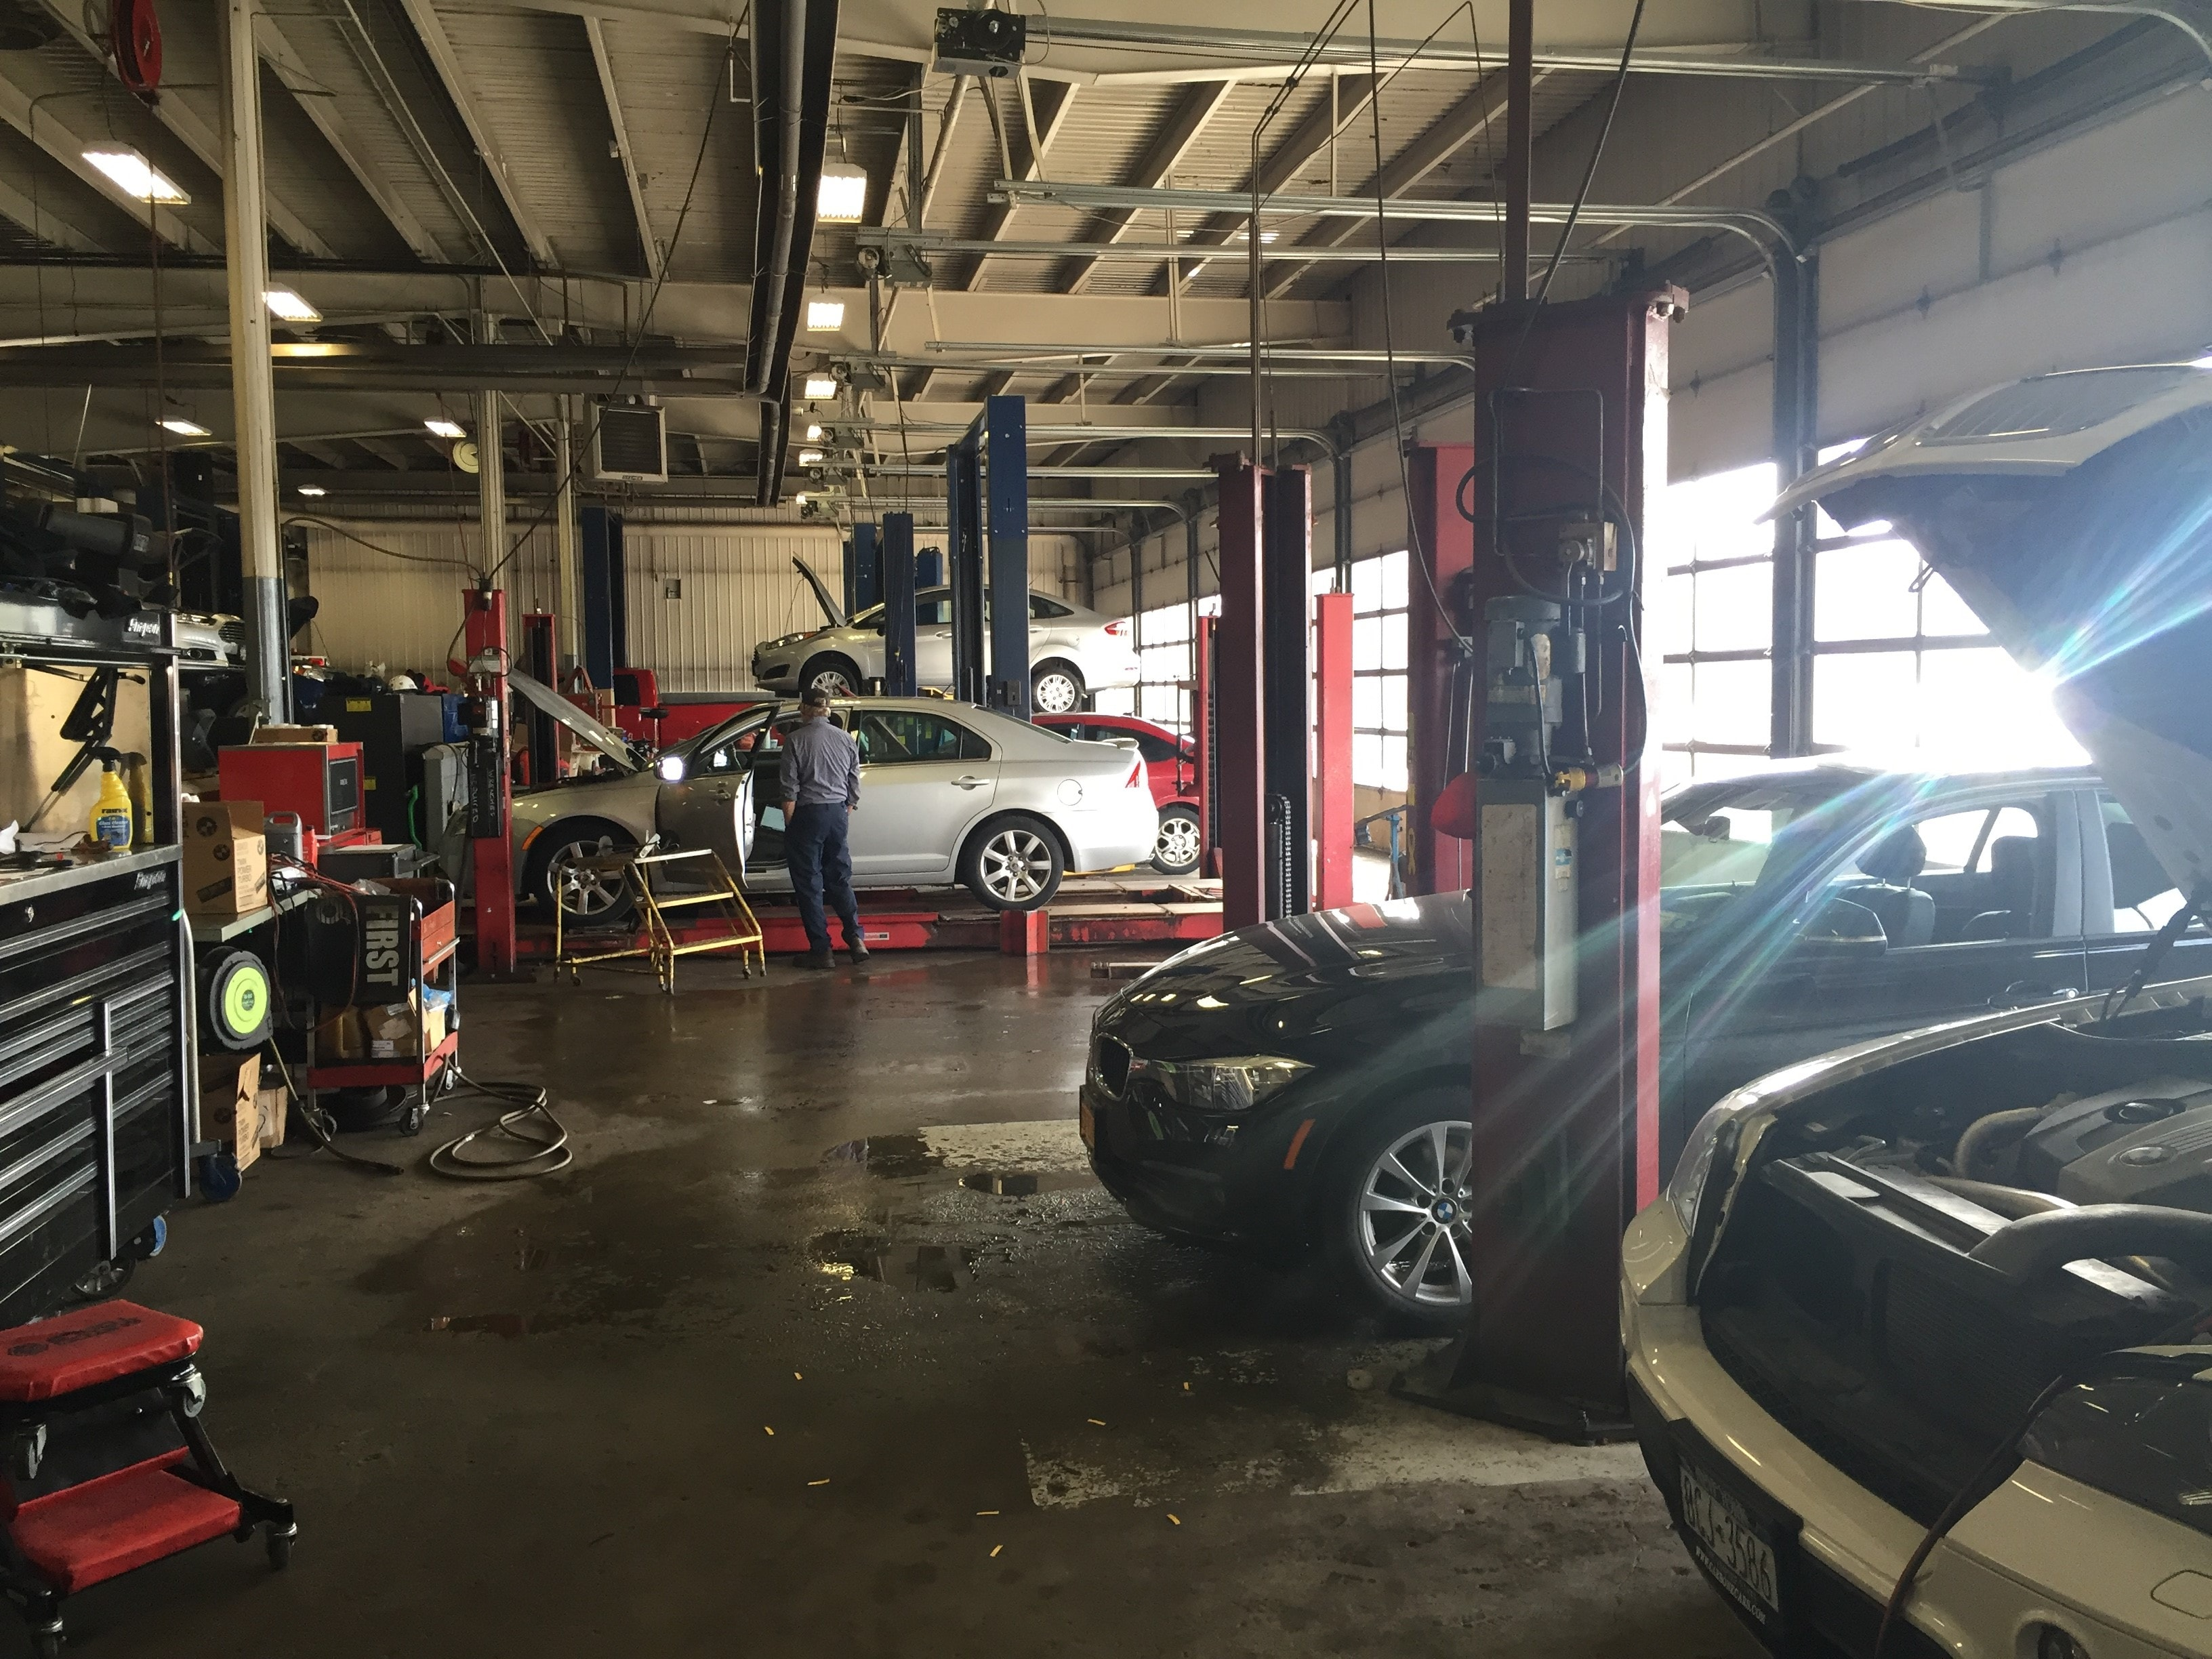 dealership combined company years knoxville in although just luxury january welcome near opened me over have image used bmw motor car graham our we was of to tn